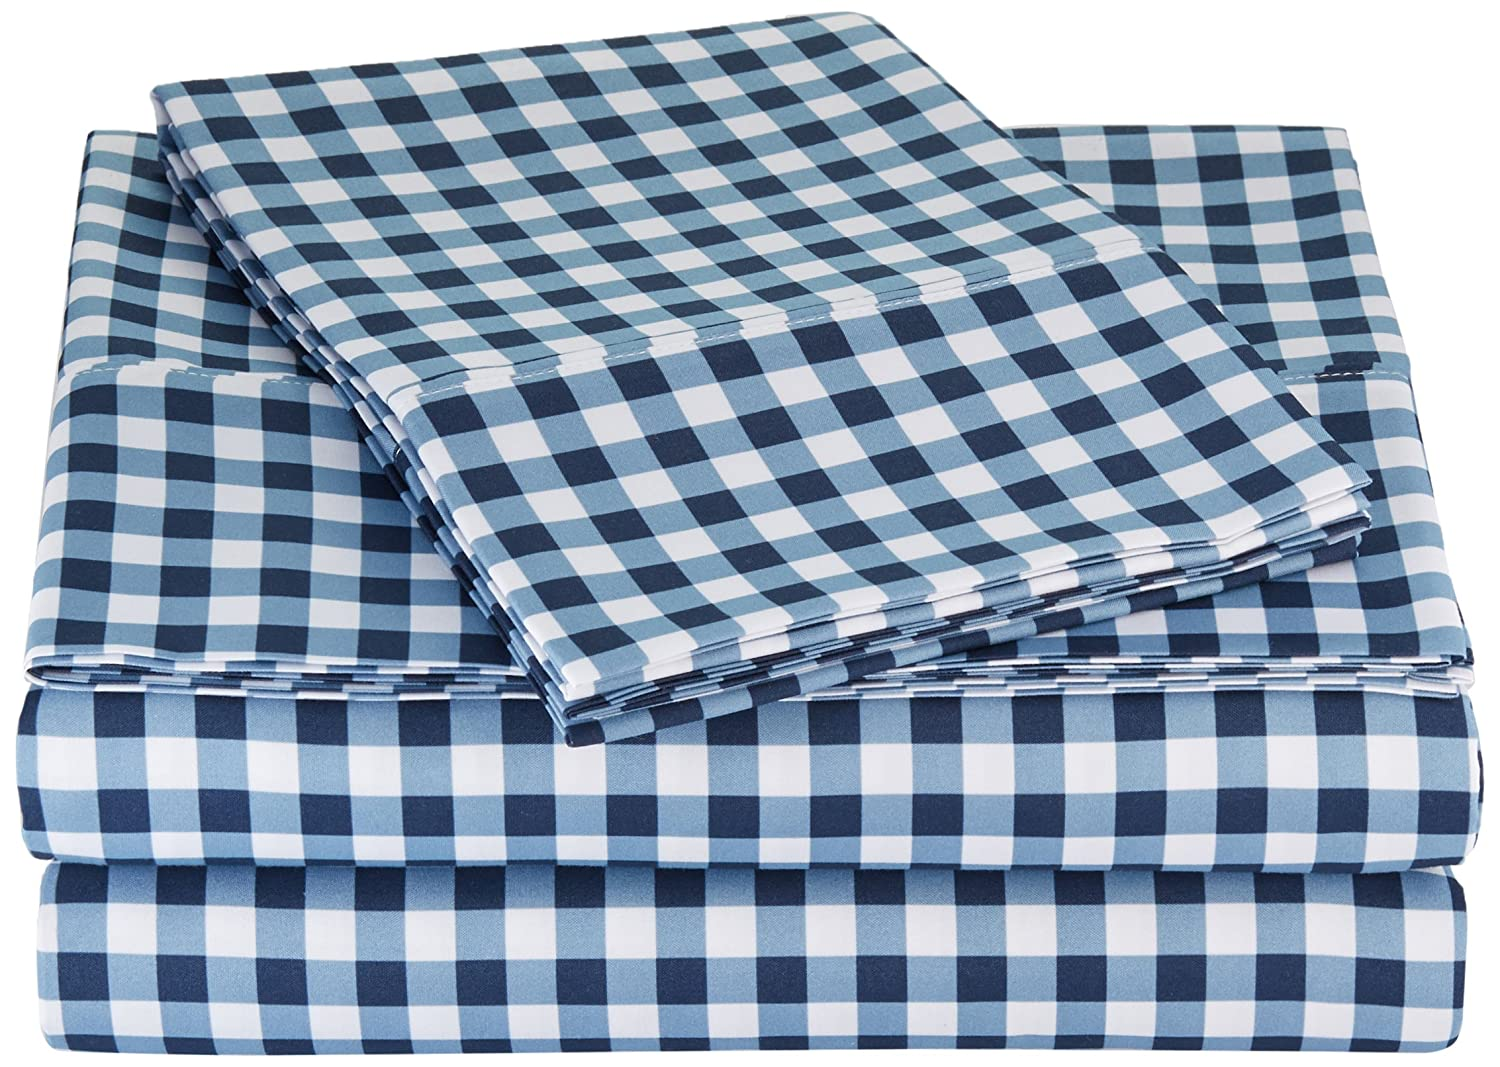 AmazonBasics Microfiber Sheet Set - Full, Gingham Plaid